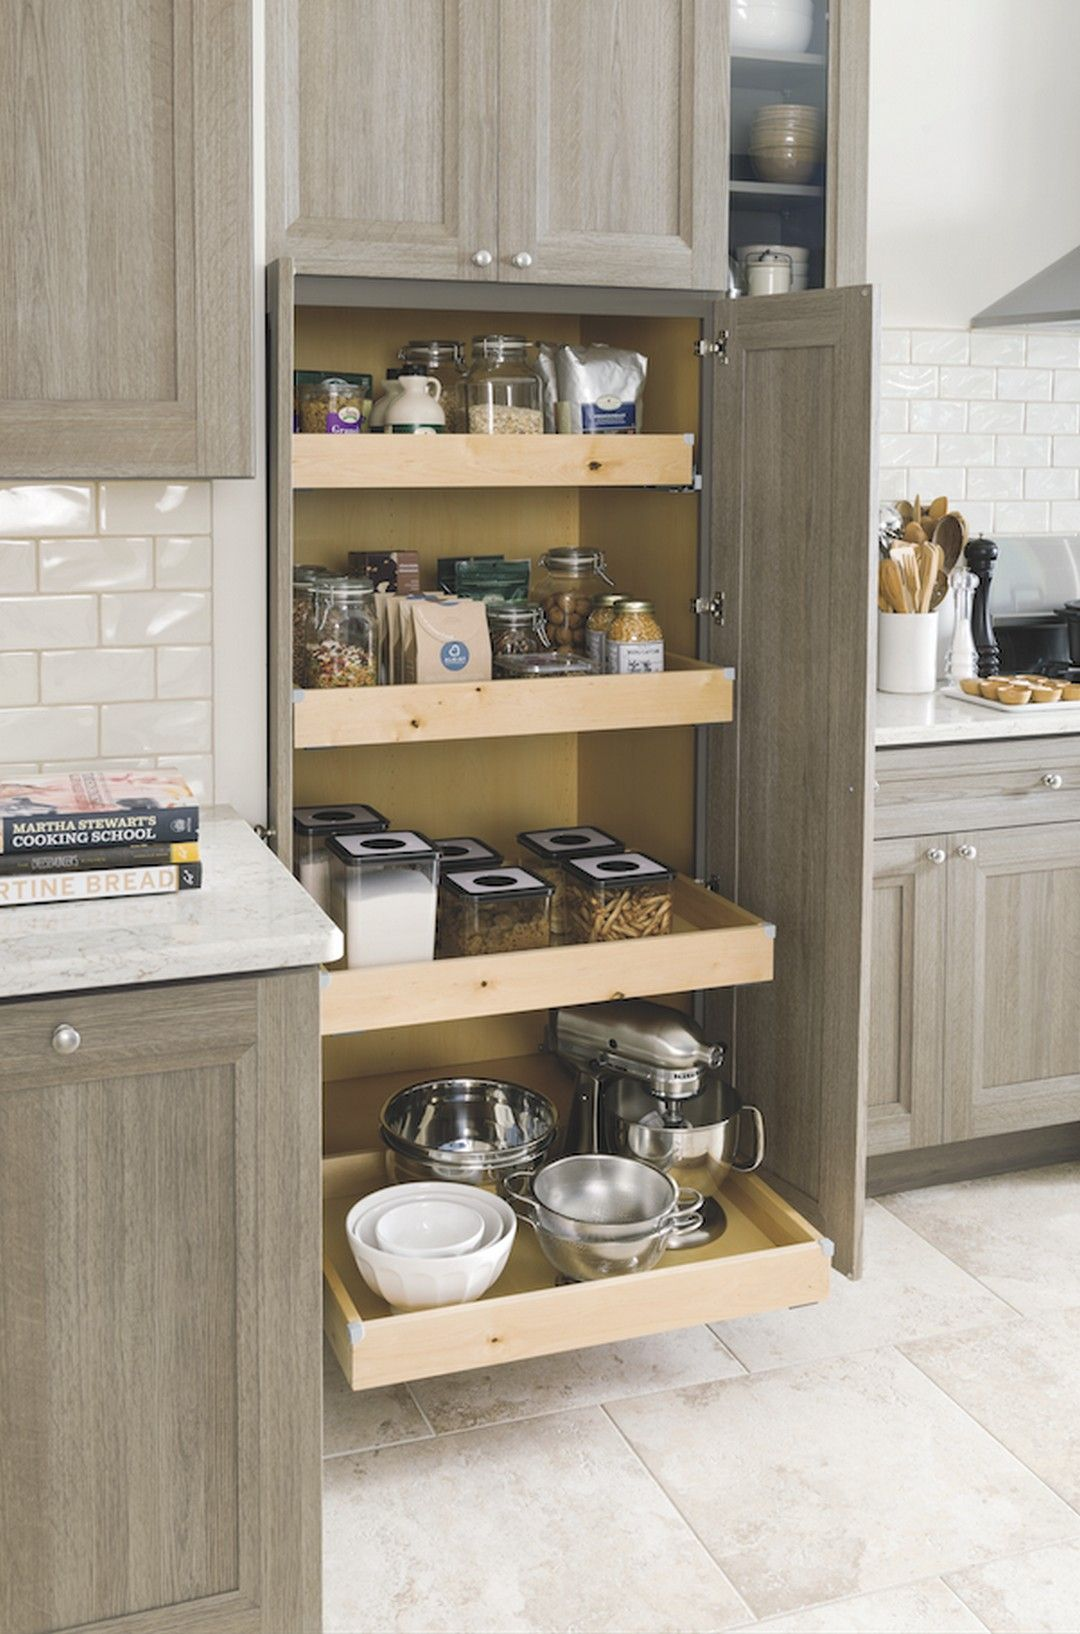 Pantry Cabinets And Cupboards 26 Organization Ideas And Options Kitchen Remodel Kitchen Layout Kitchen Design